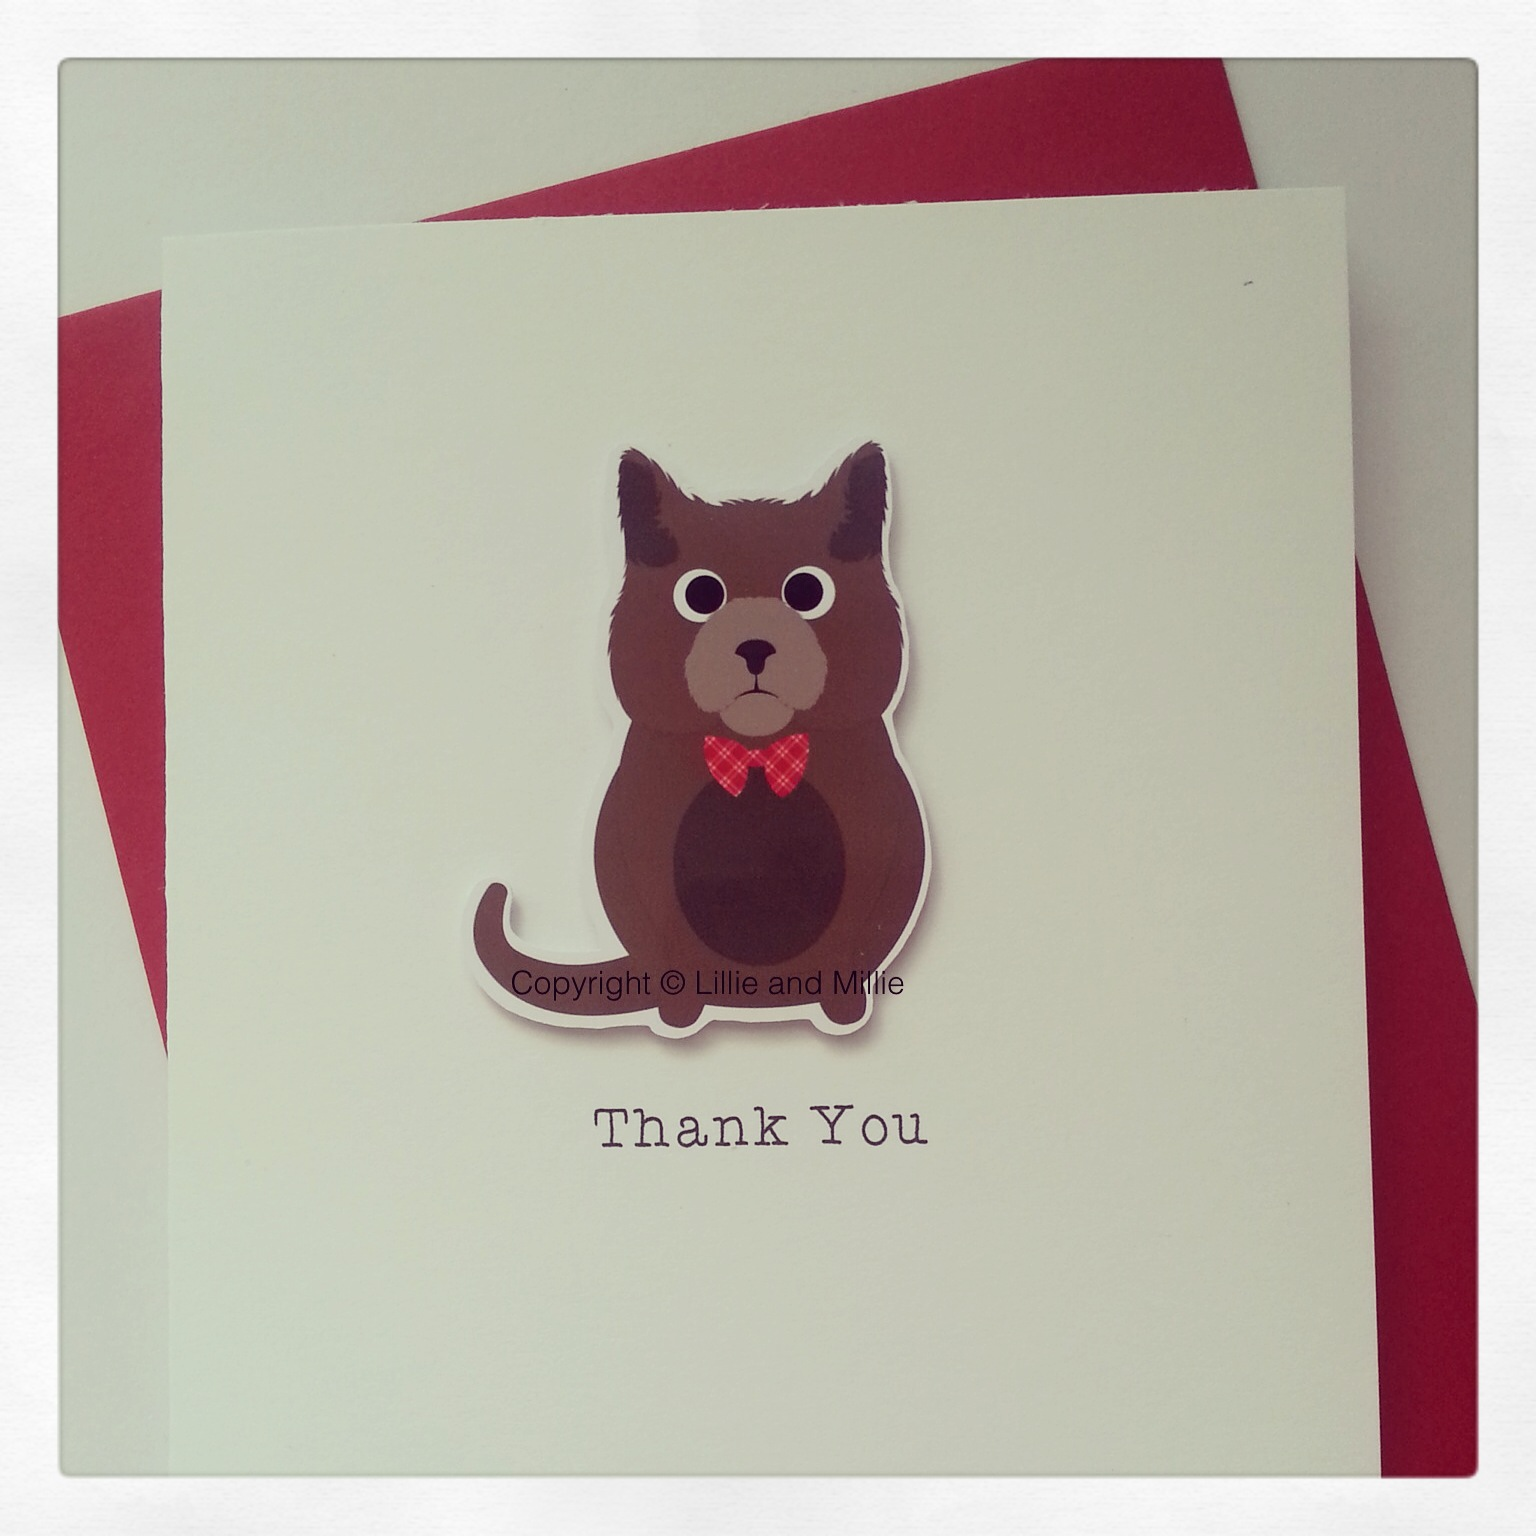 Cute and Cuddly Brown Cat Greetings Card